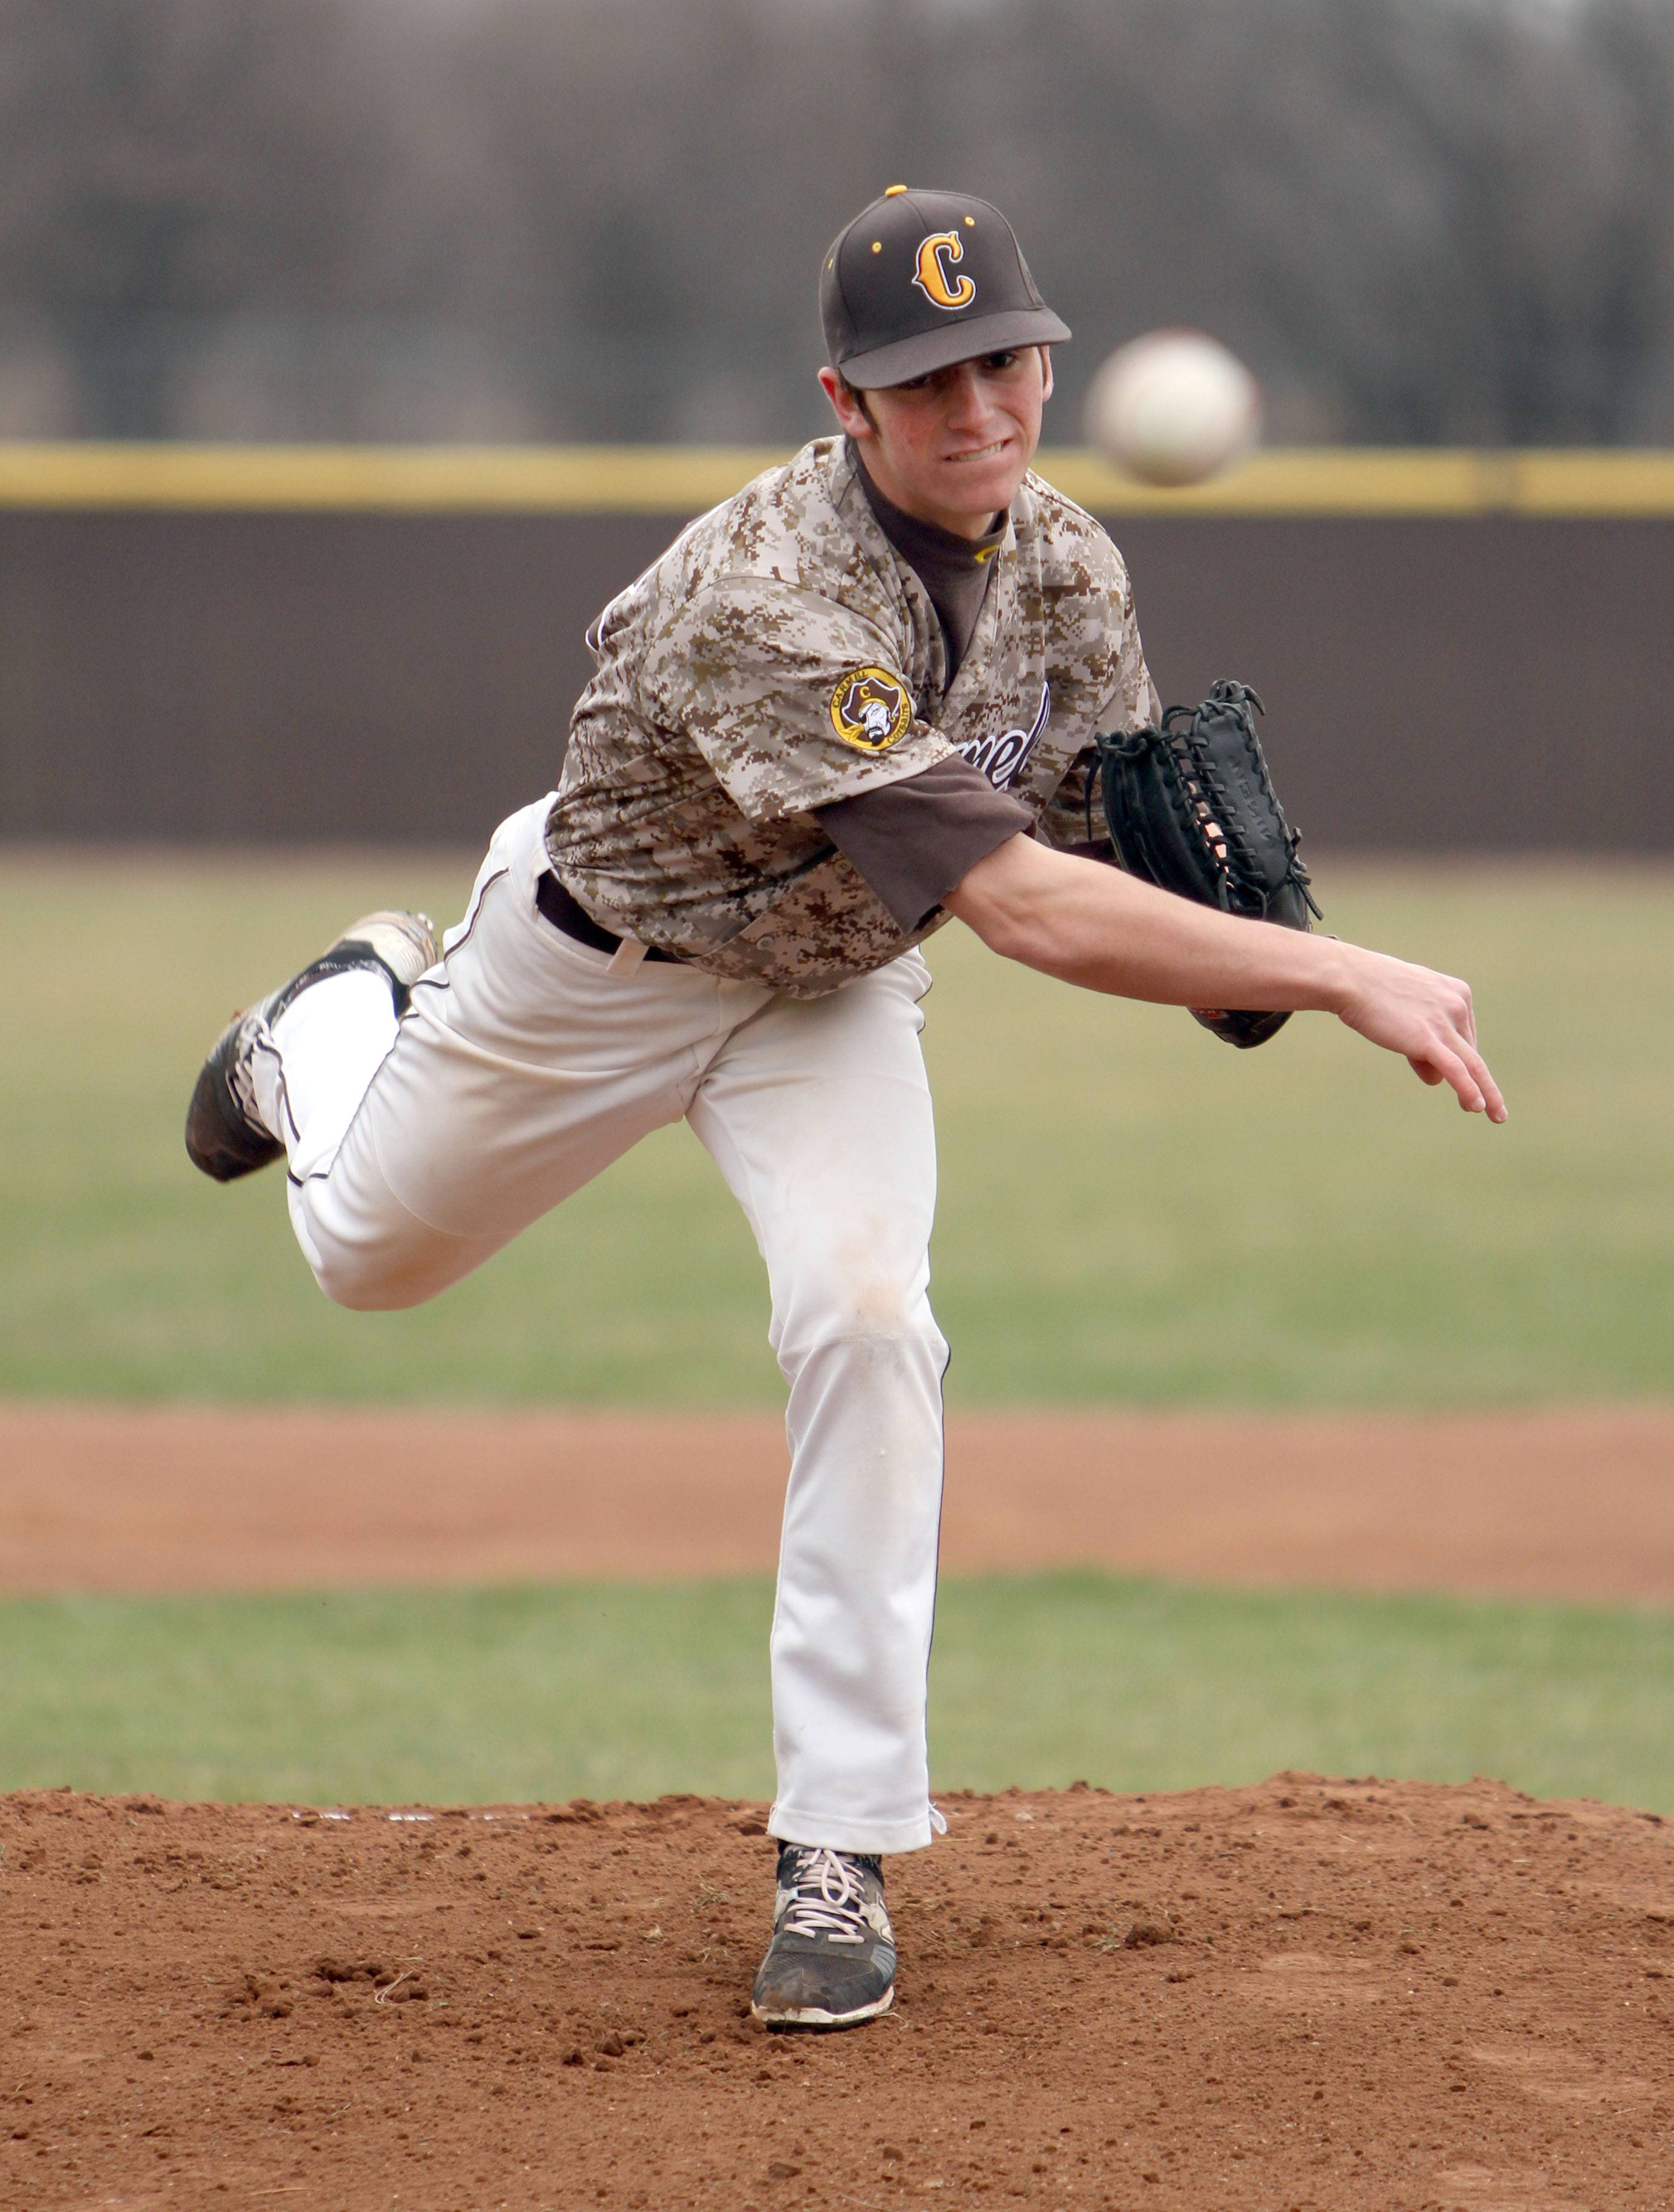 Carmel's Joe Santoro displays his right-handed delivery; he can also pitch left-handed.